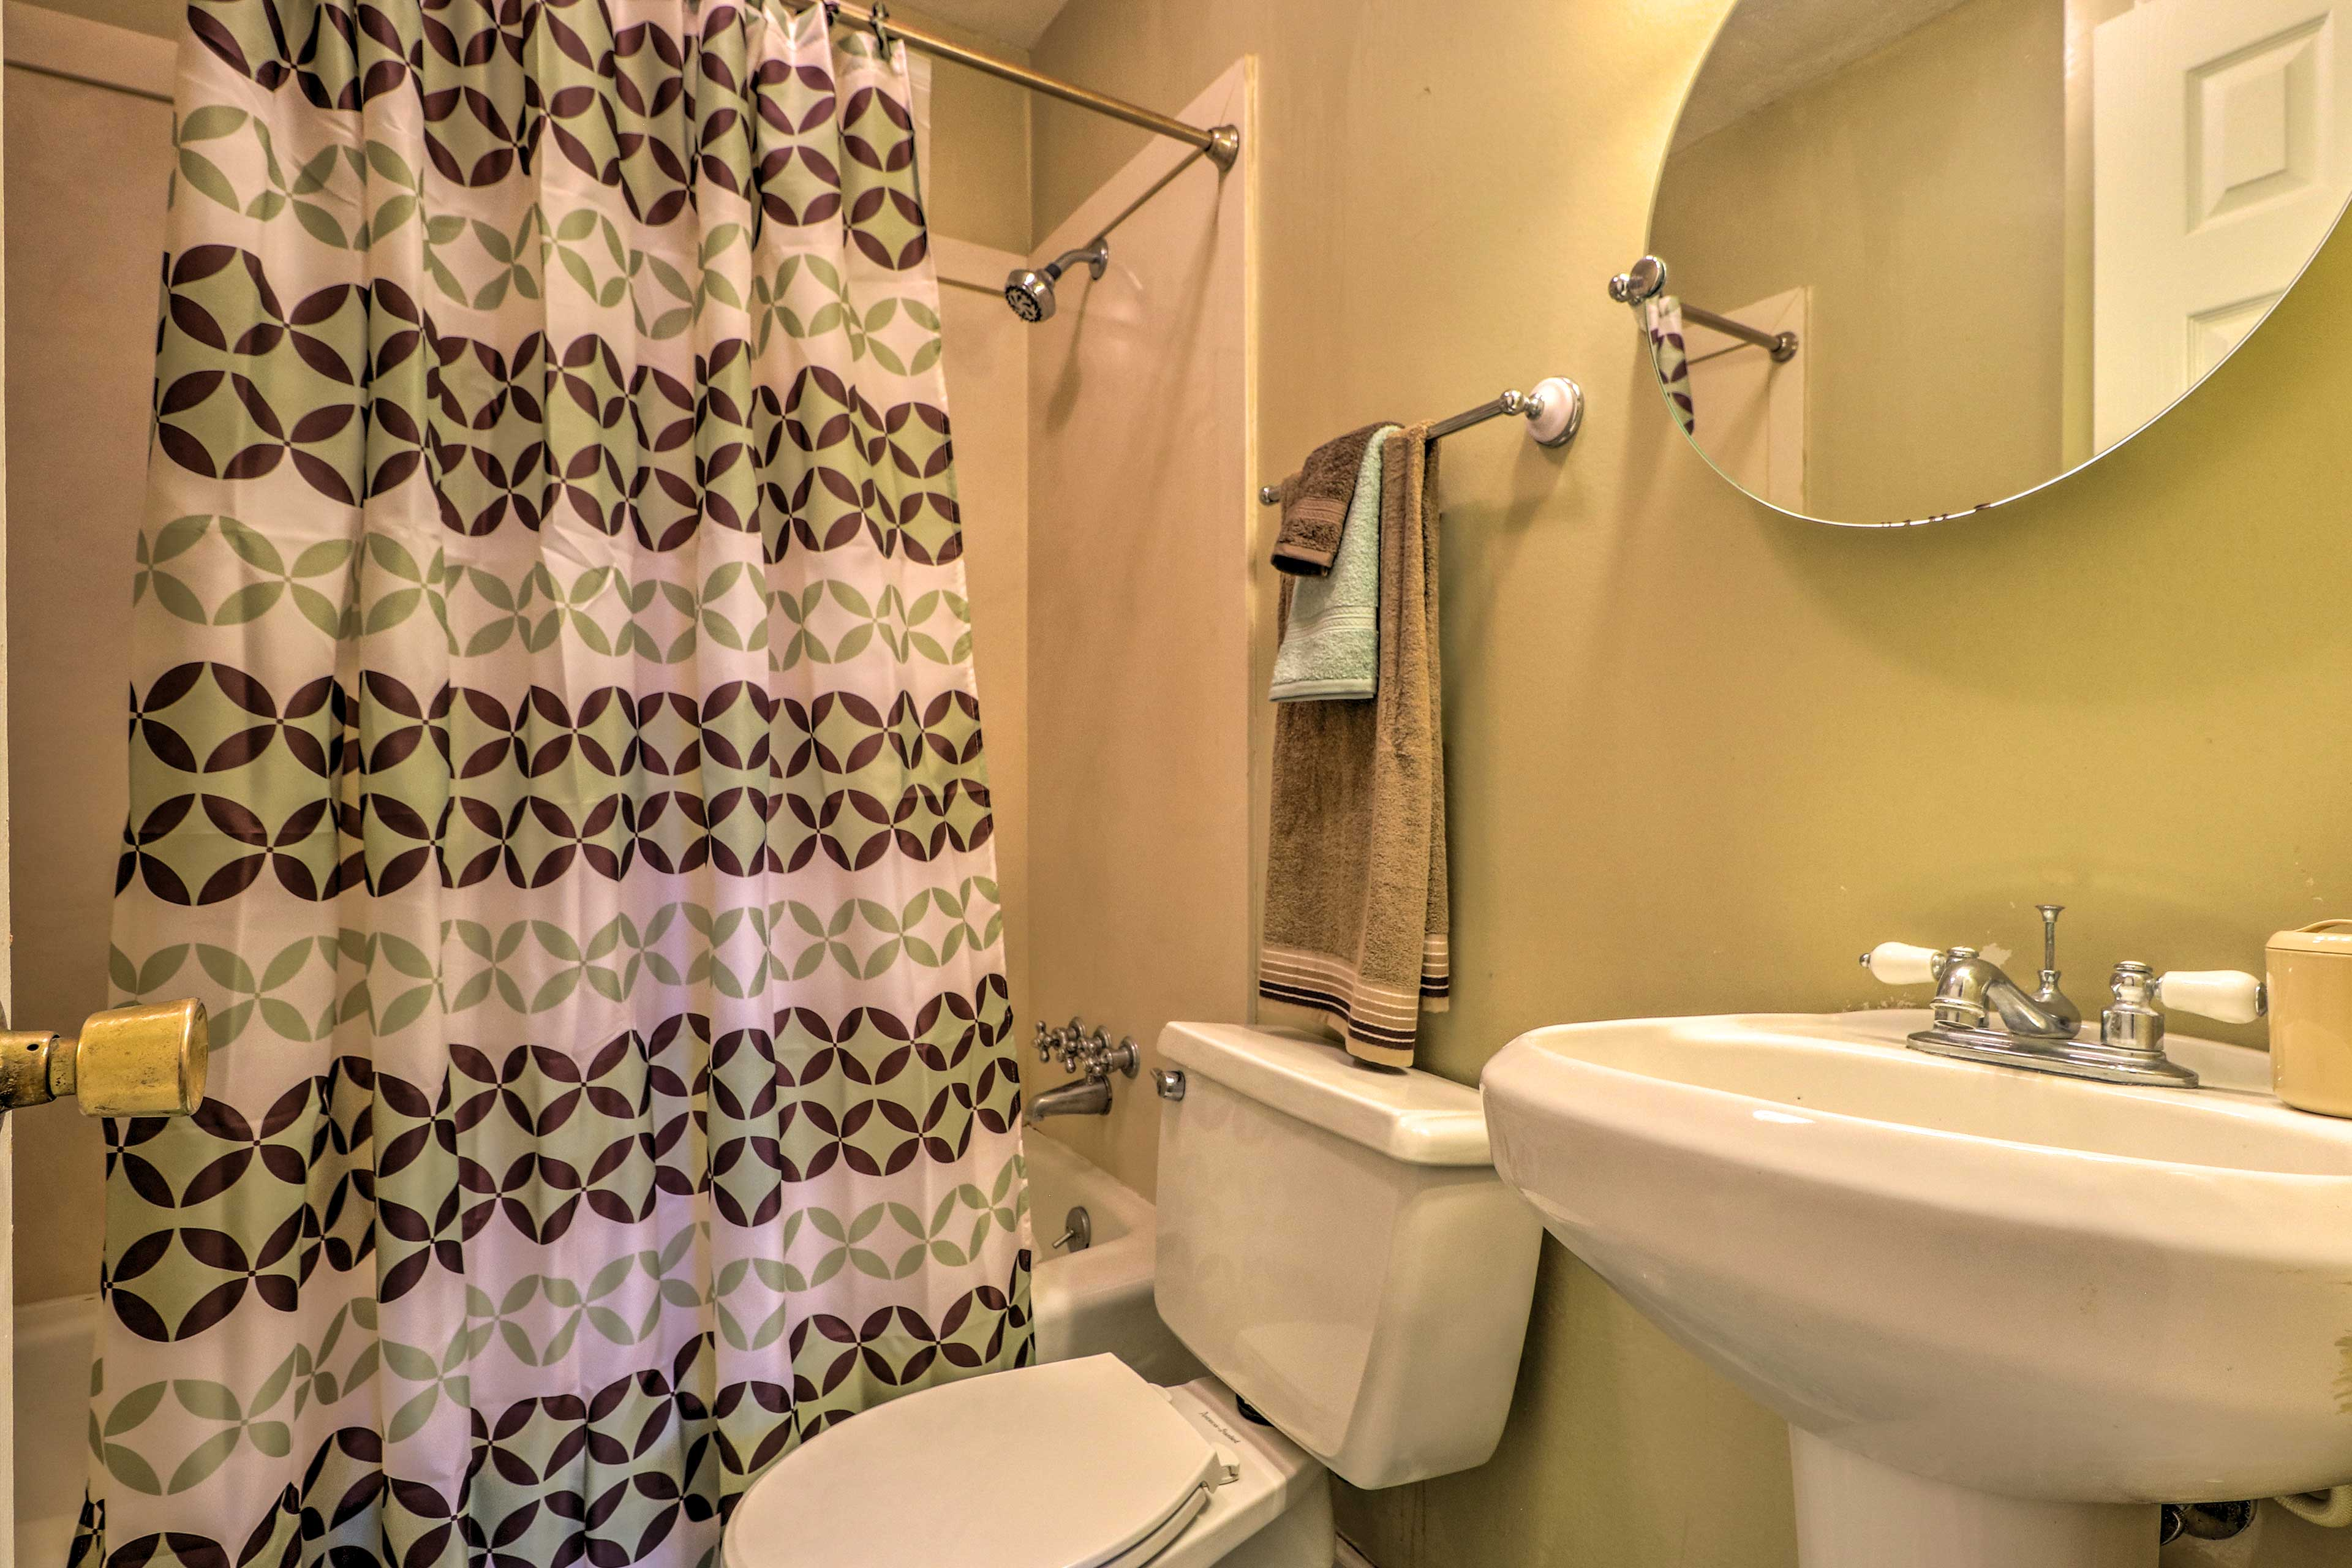 The home's full bathroom include a shower/tub combo.